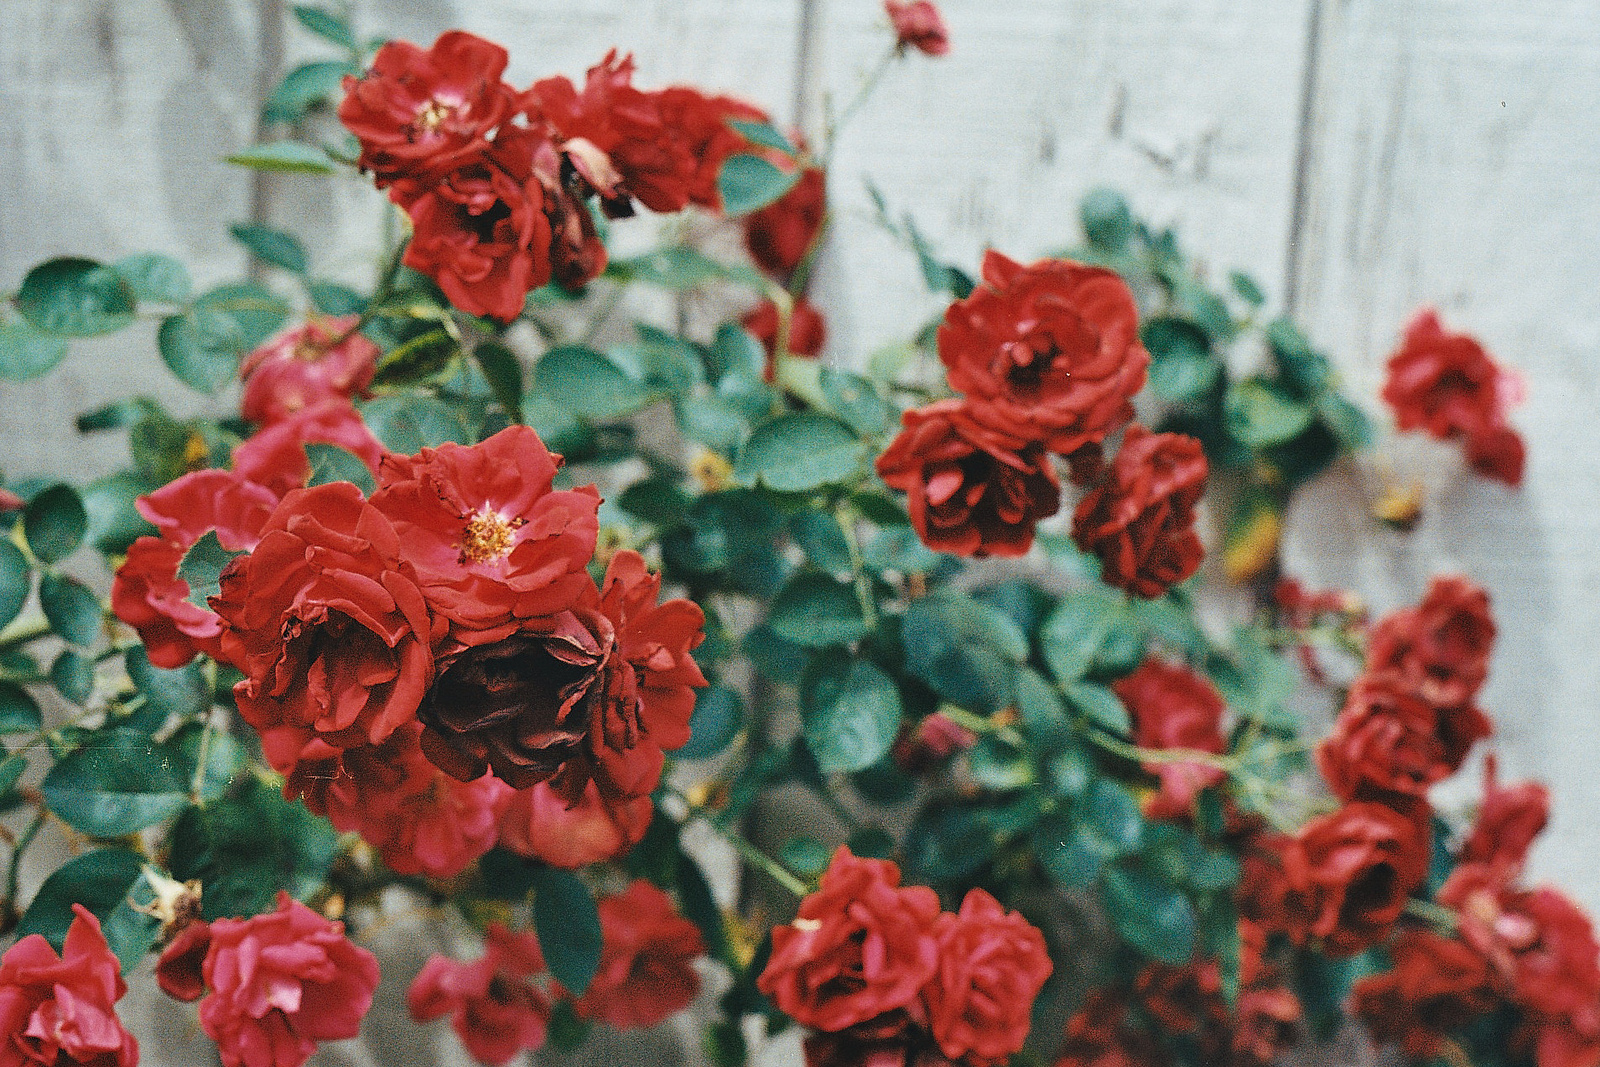 Red Flowers Tumblr 16 Widescreen Wallpaper